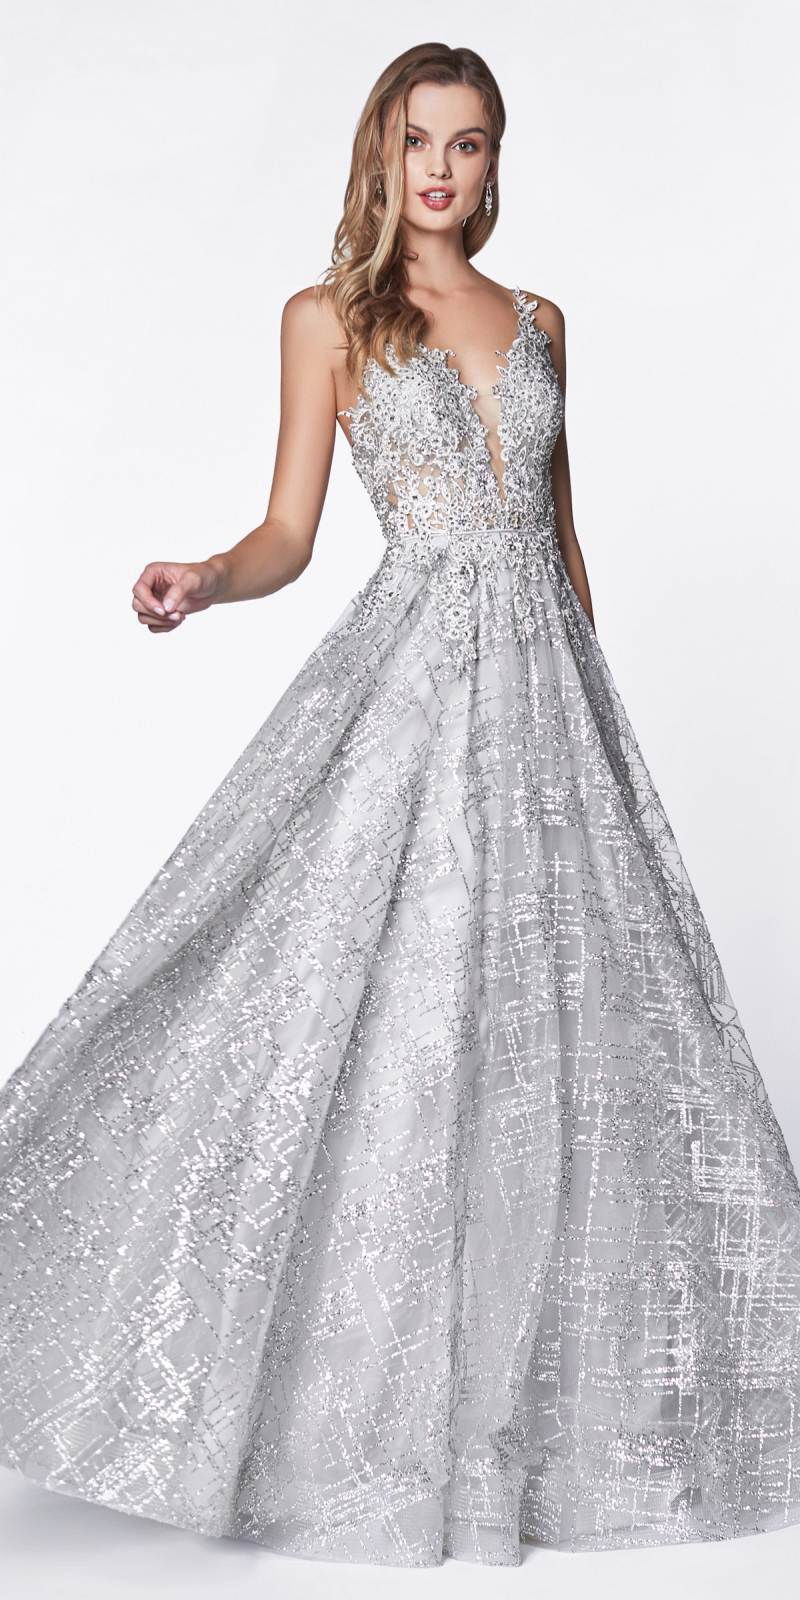 2044beff9d8 Cinderella Divine CJ515 Glitter Ball Gown Silver With Lace Bodice Details  And Plunging Neckline ...